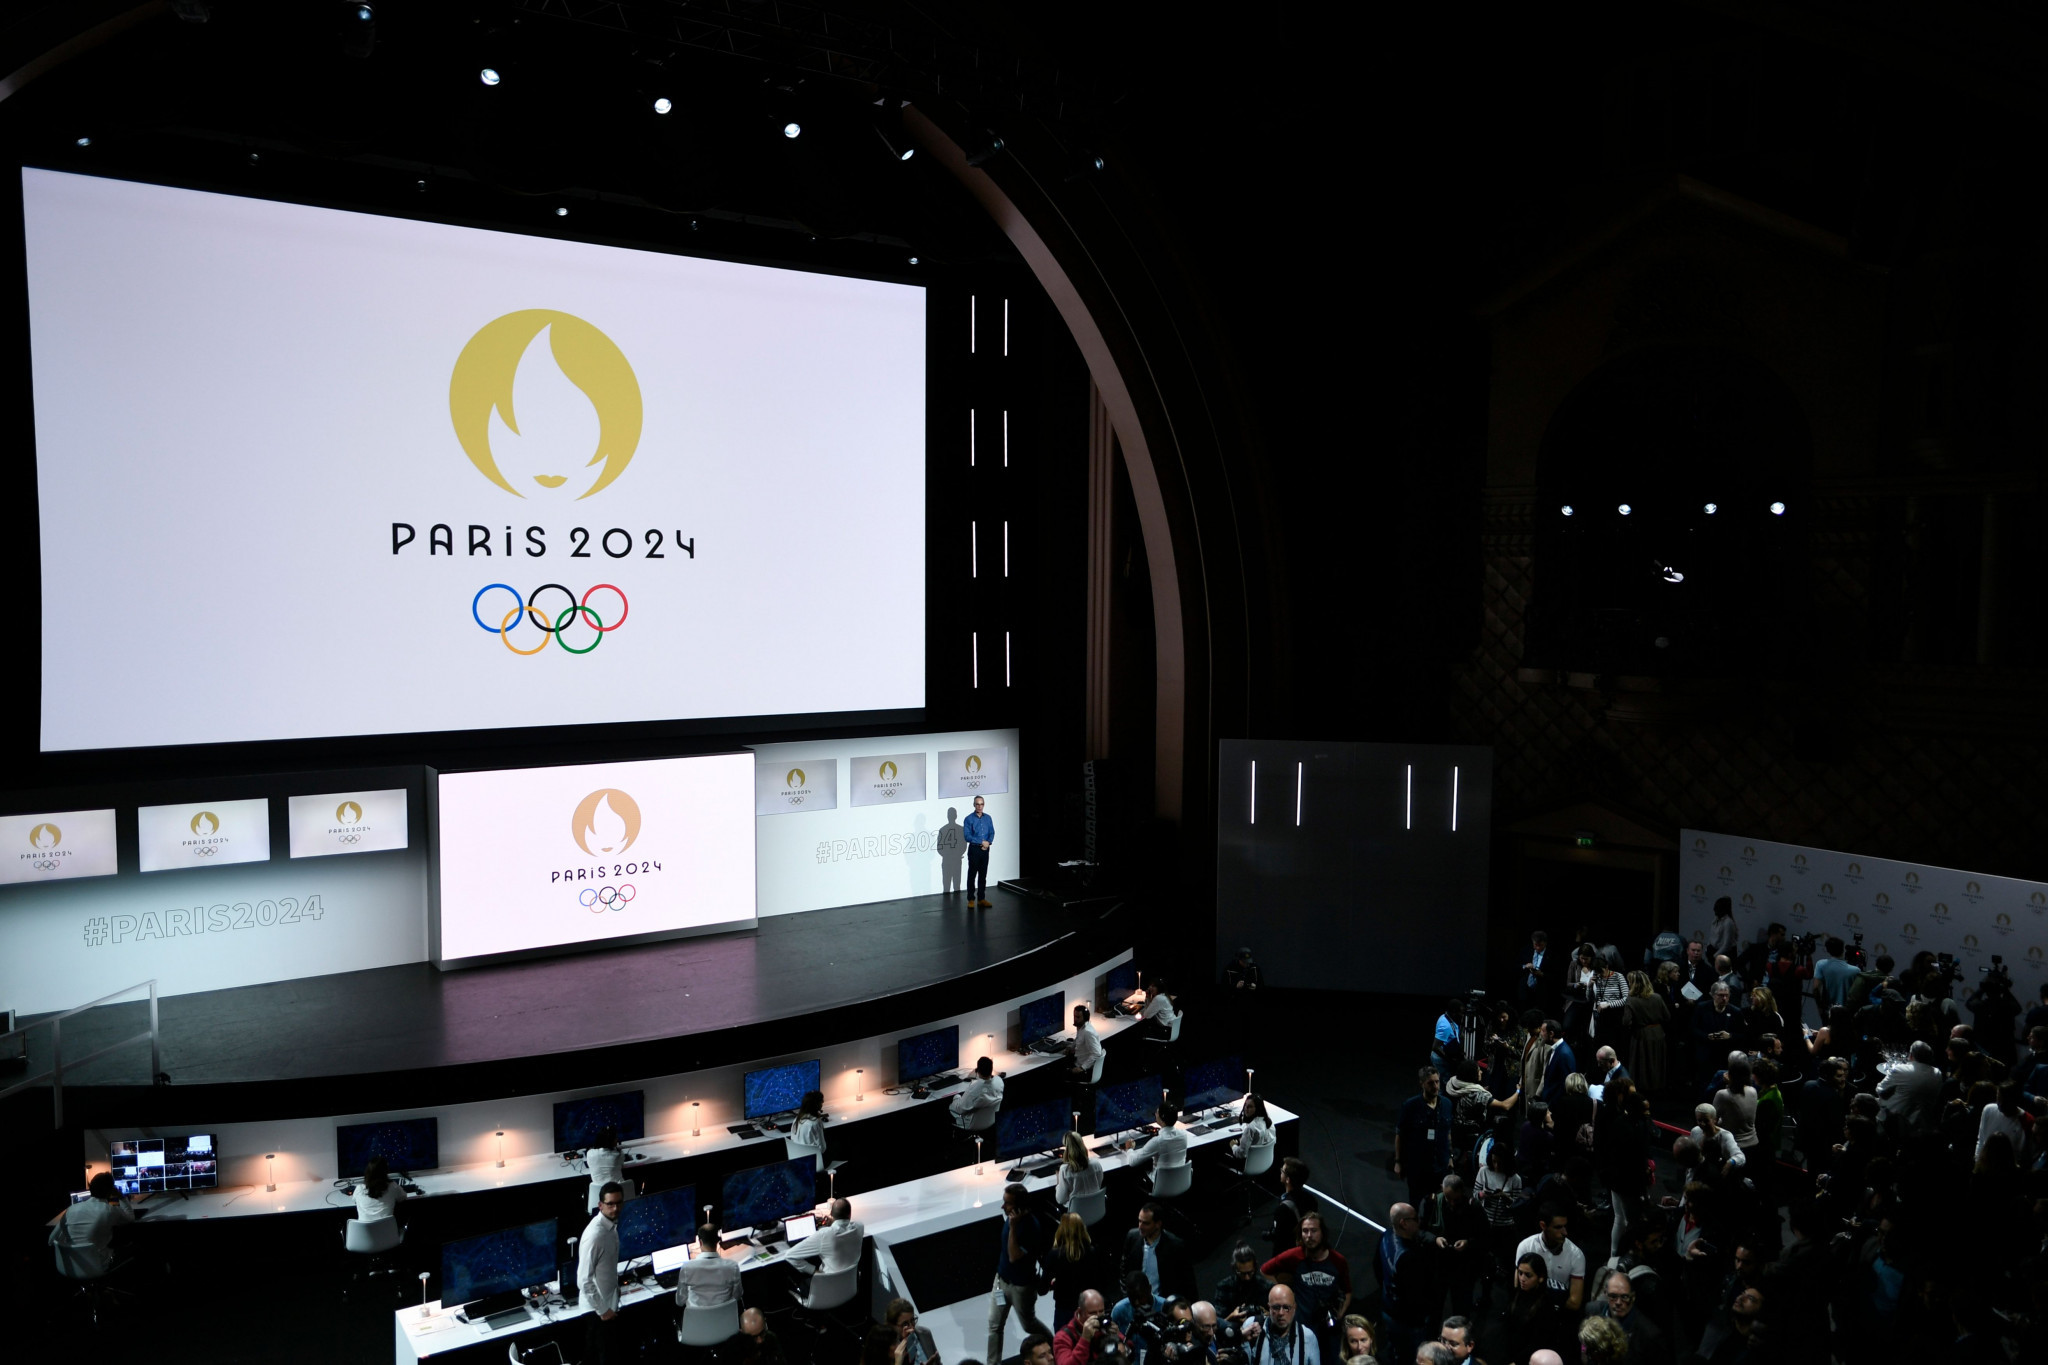 Paris 2024 and French Economic, Social and Environmental Council issue joint declaration